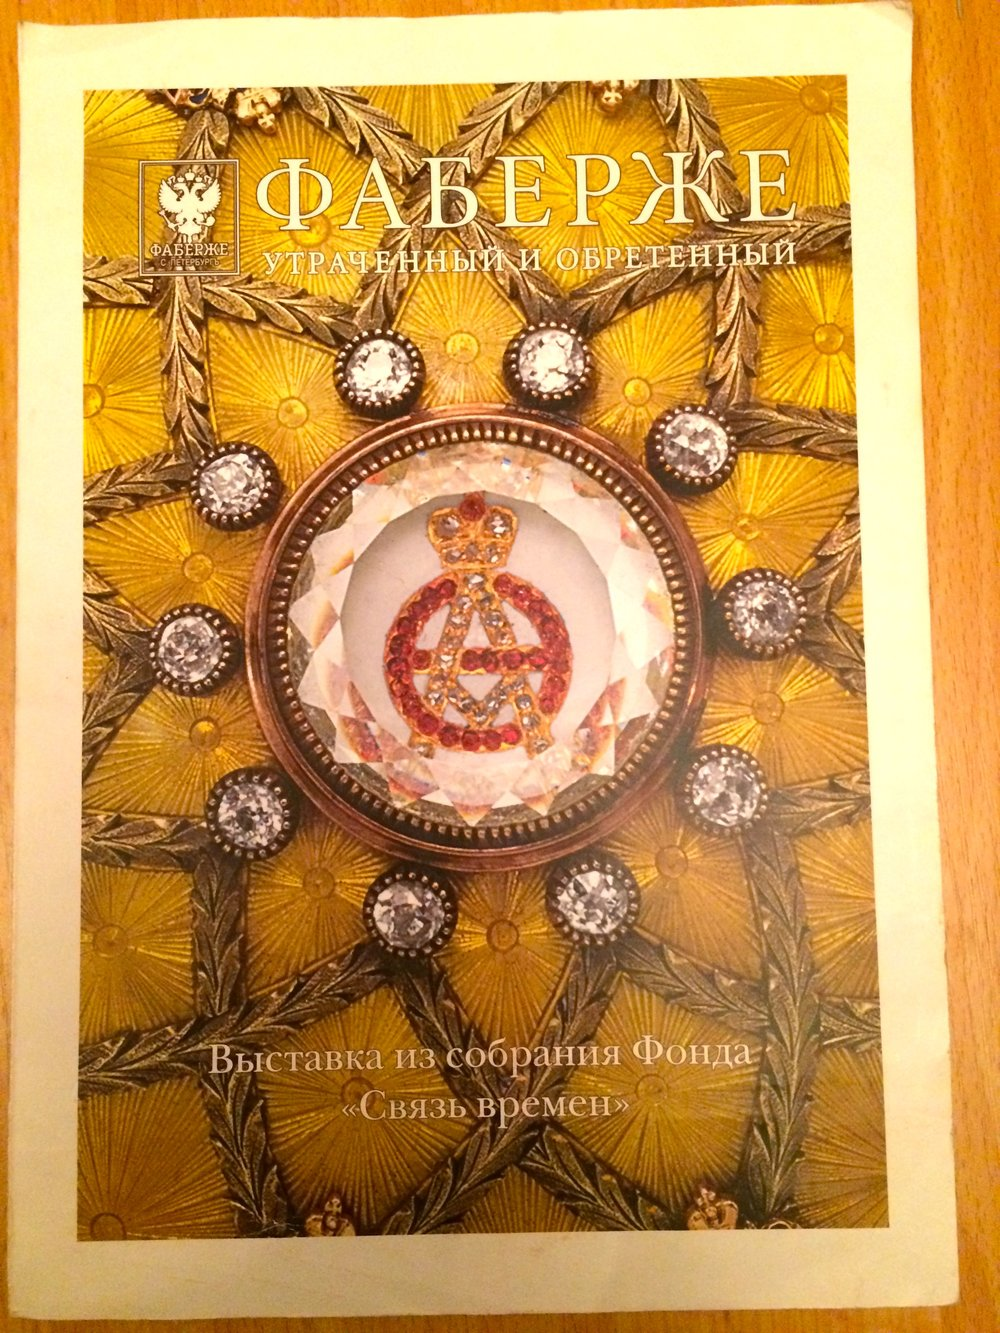 Faberge catalogue.JPG